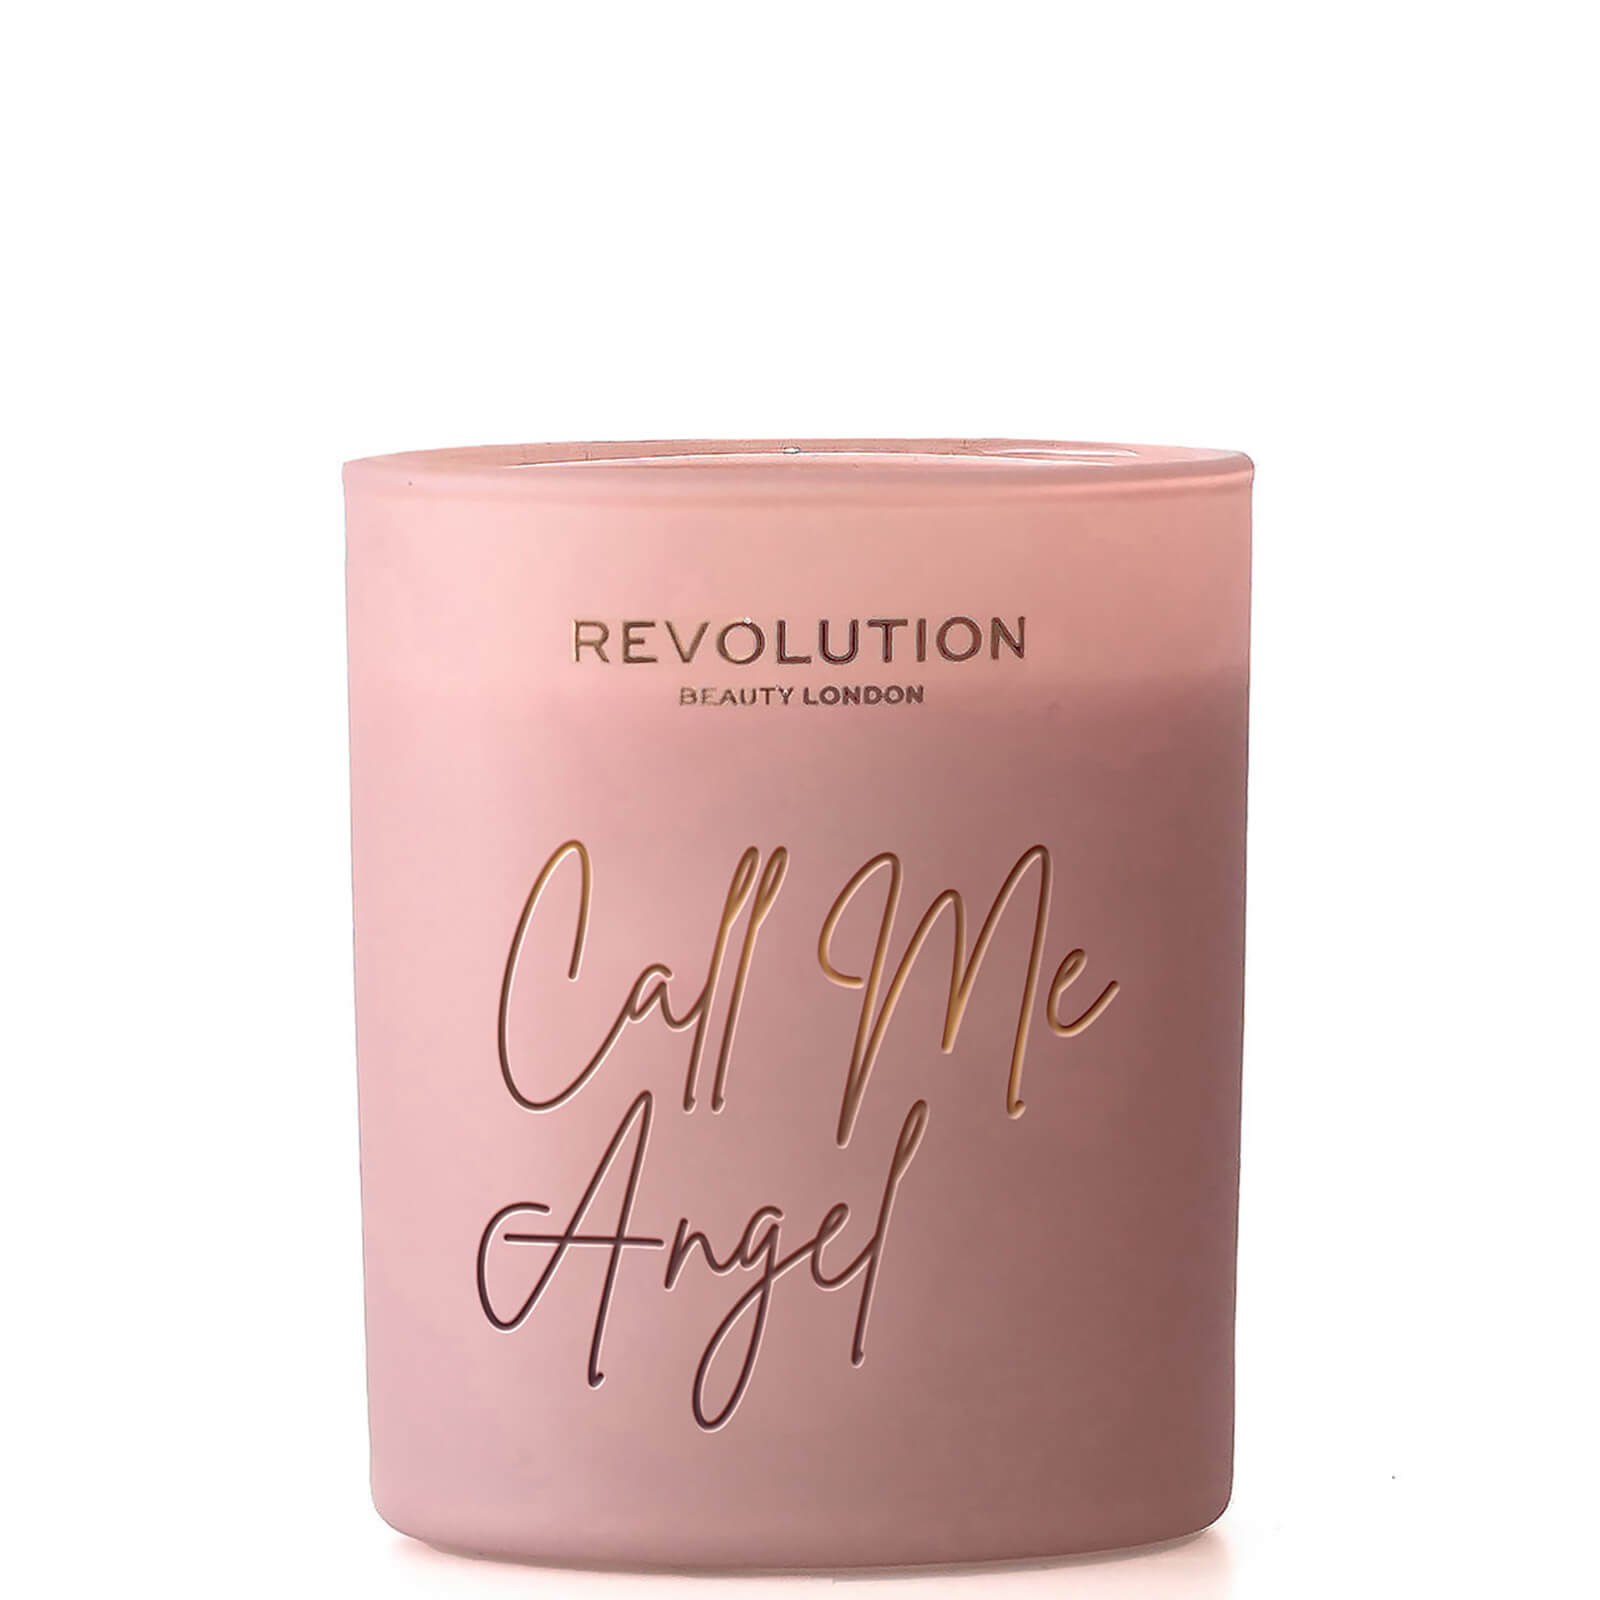 Revolution Home Call Me Angel Scented Candle 10g